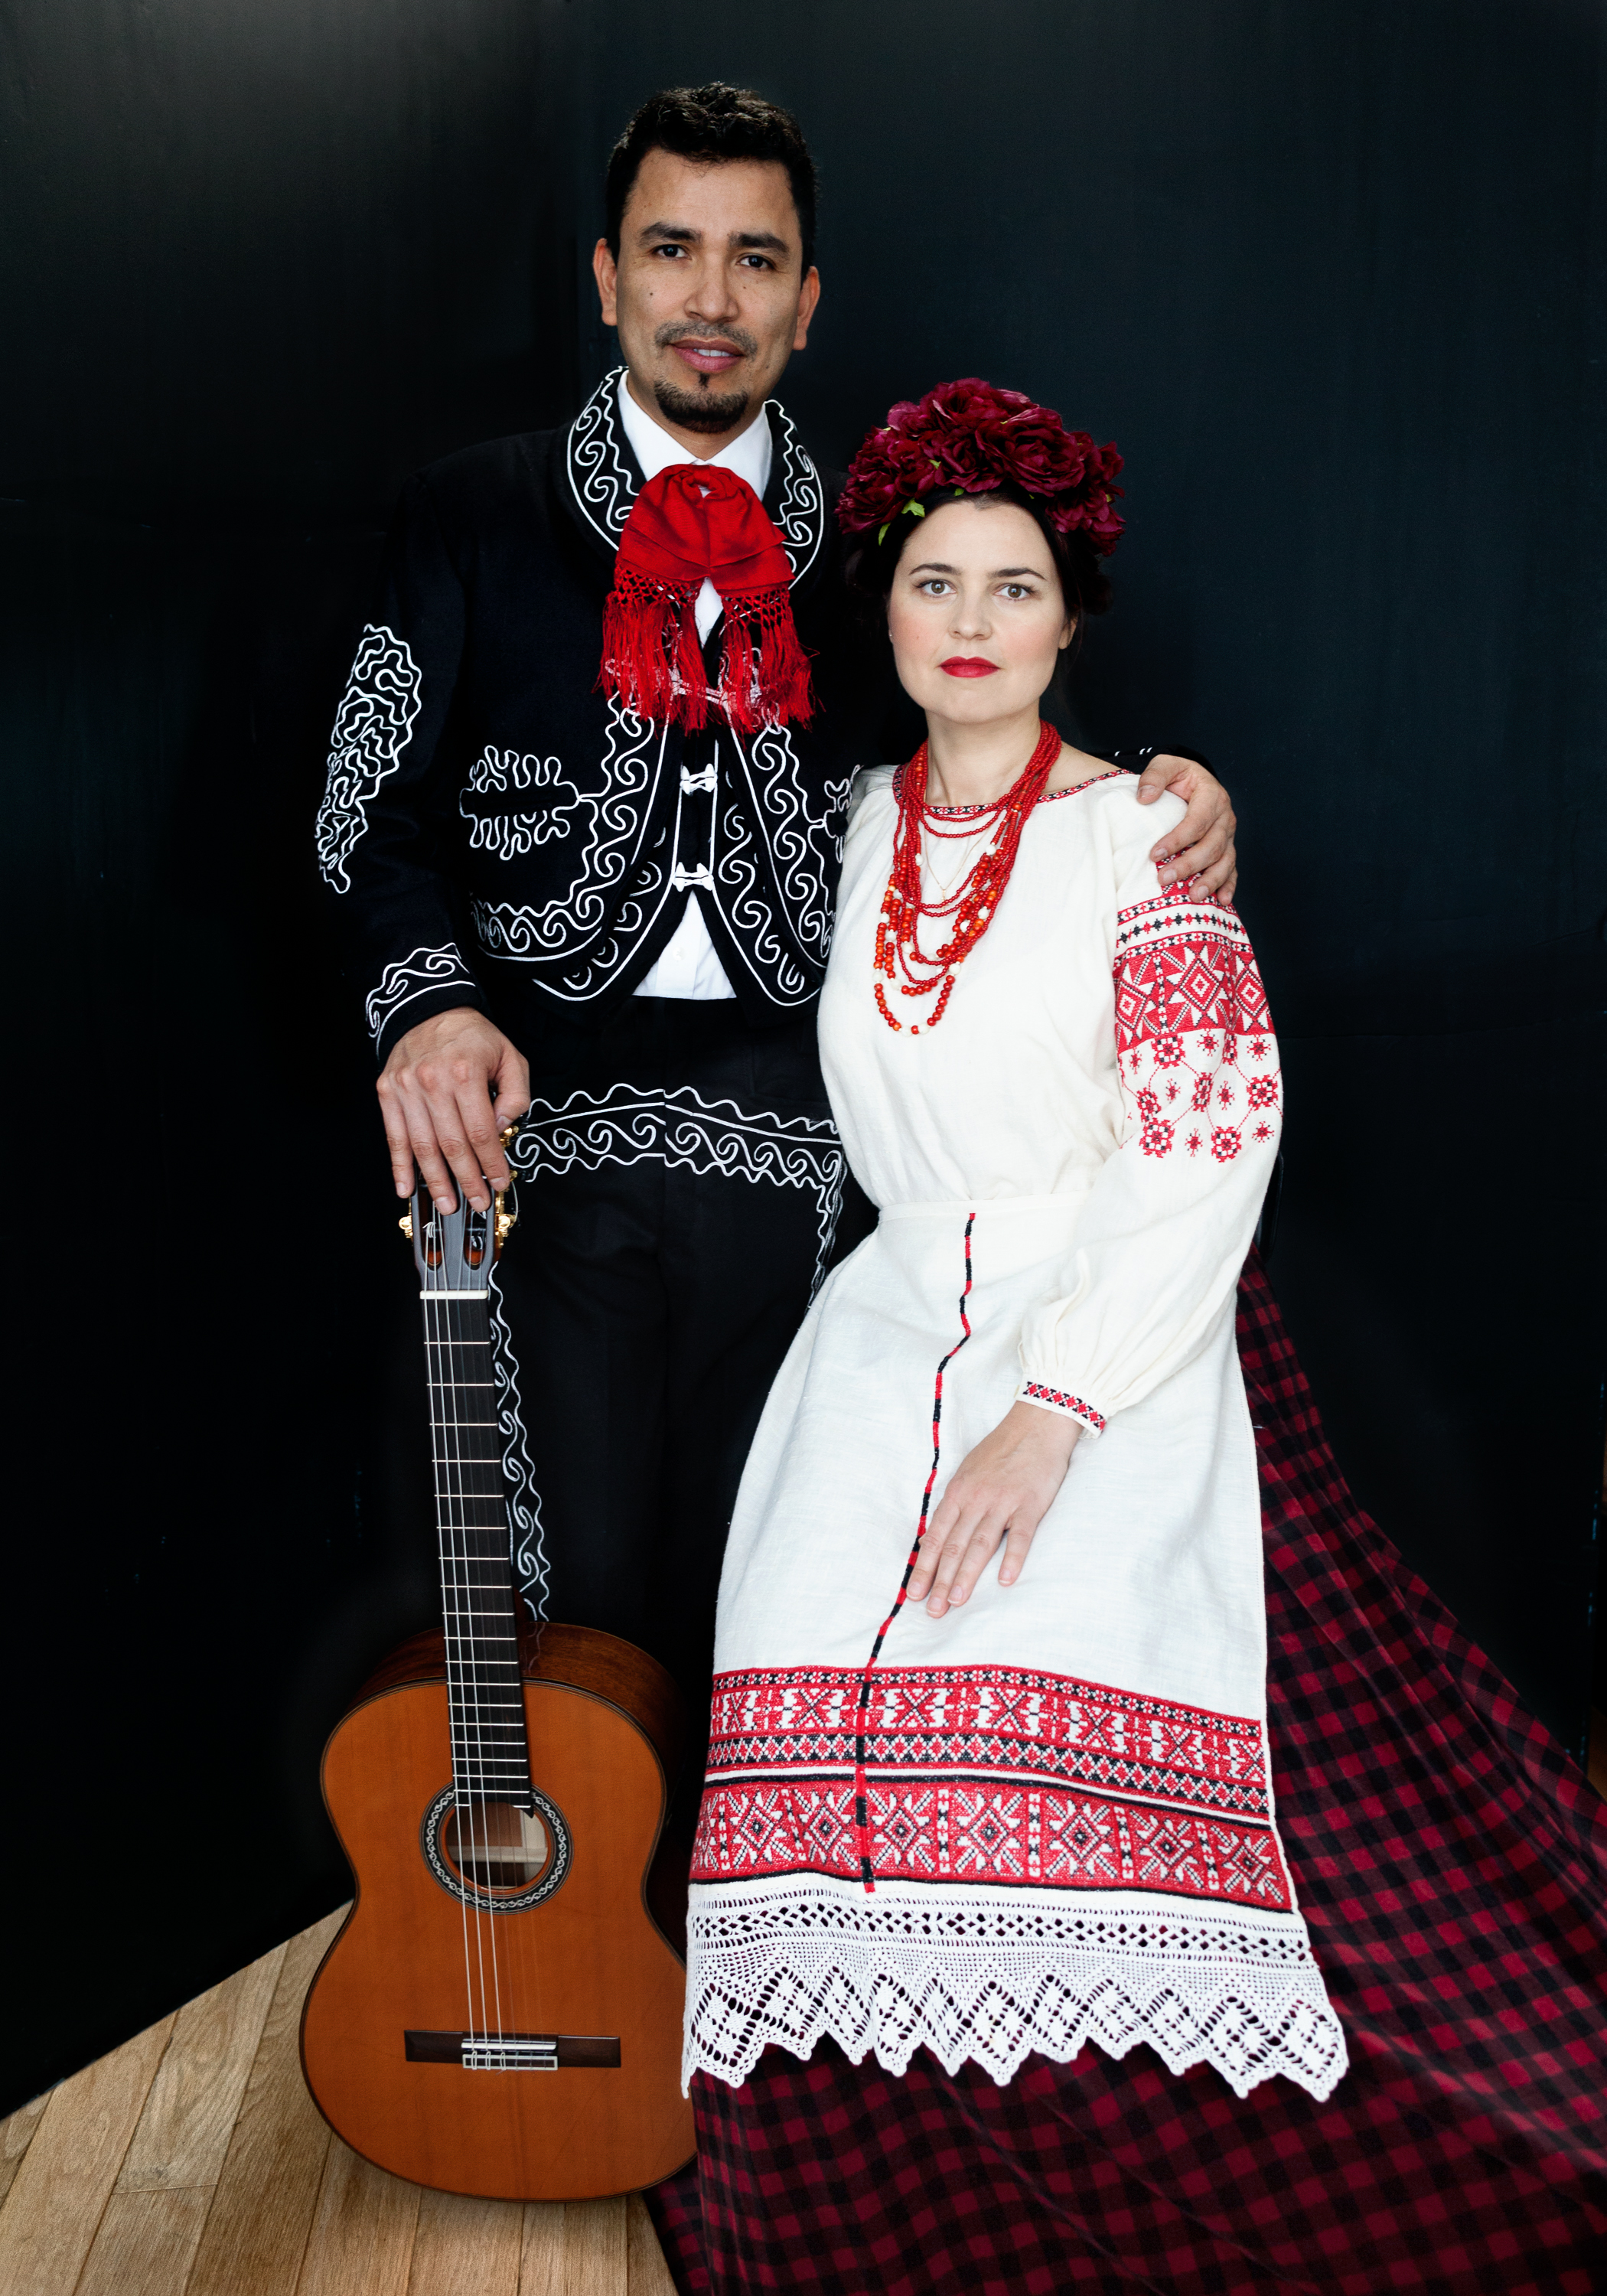 Mexico and Belarus are getting hitched!